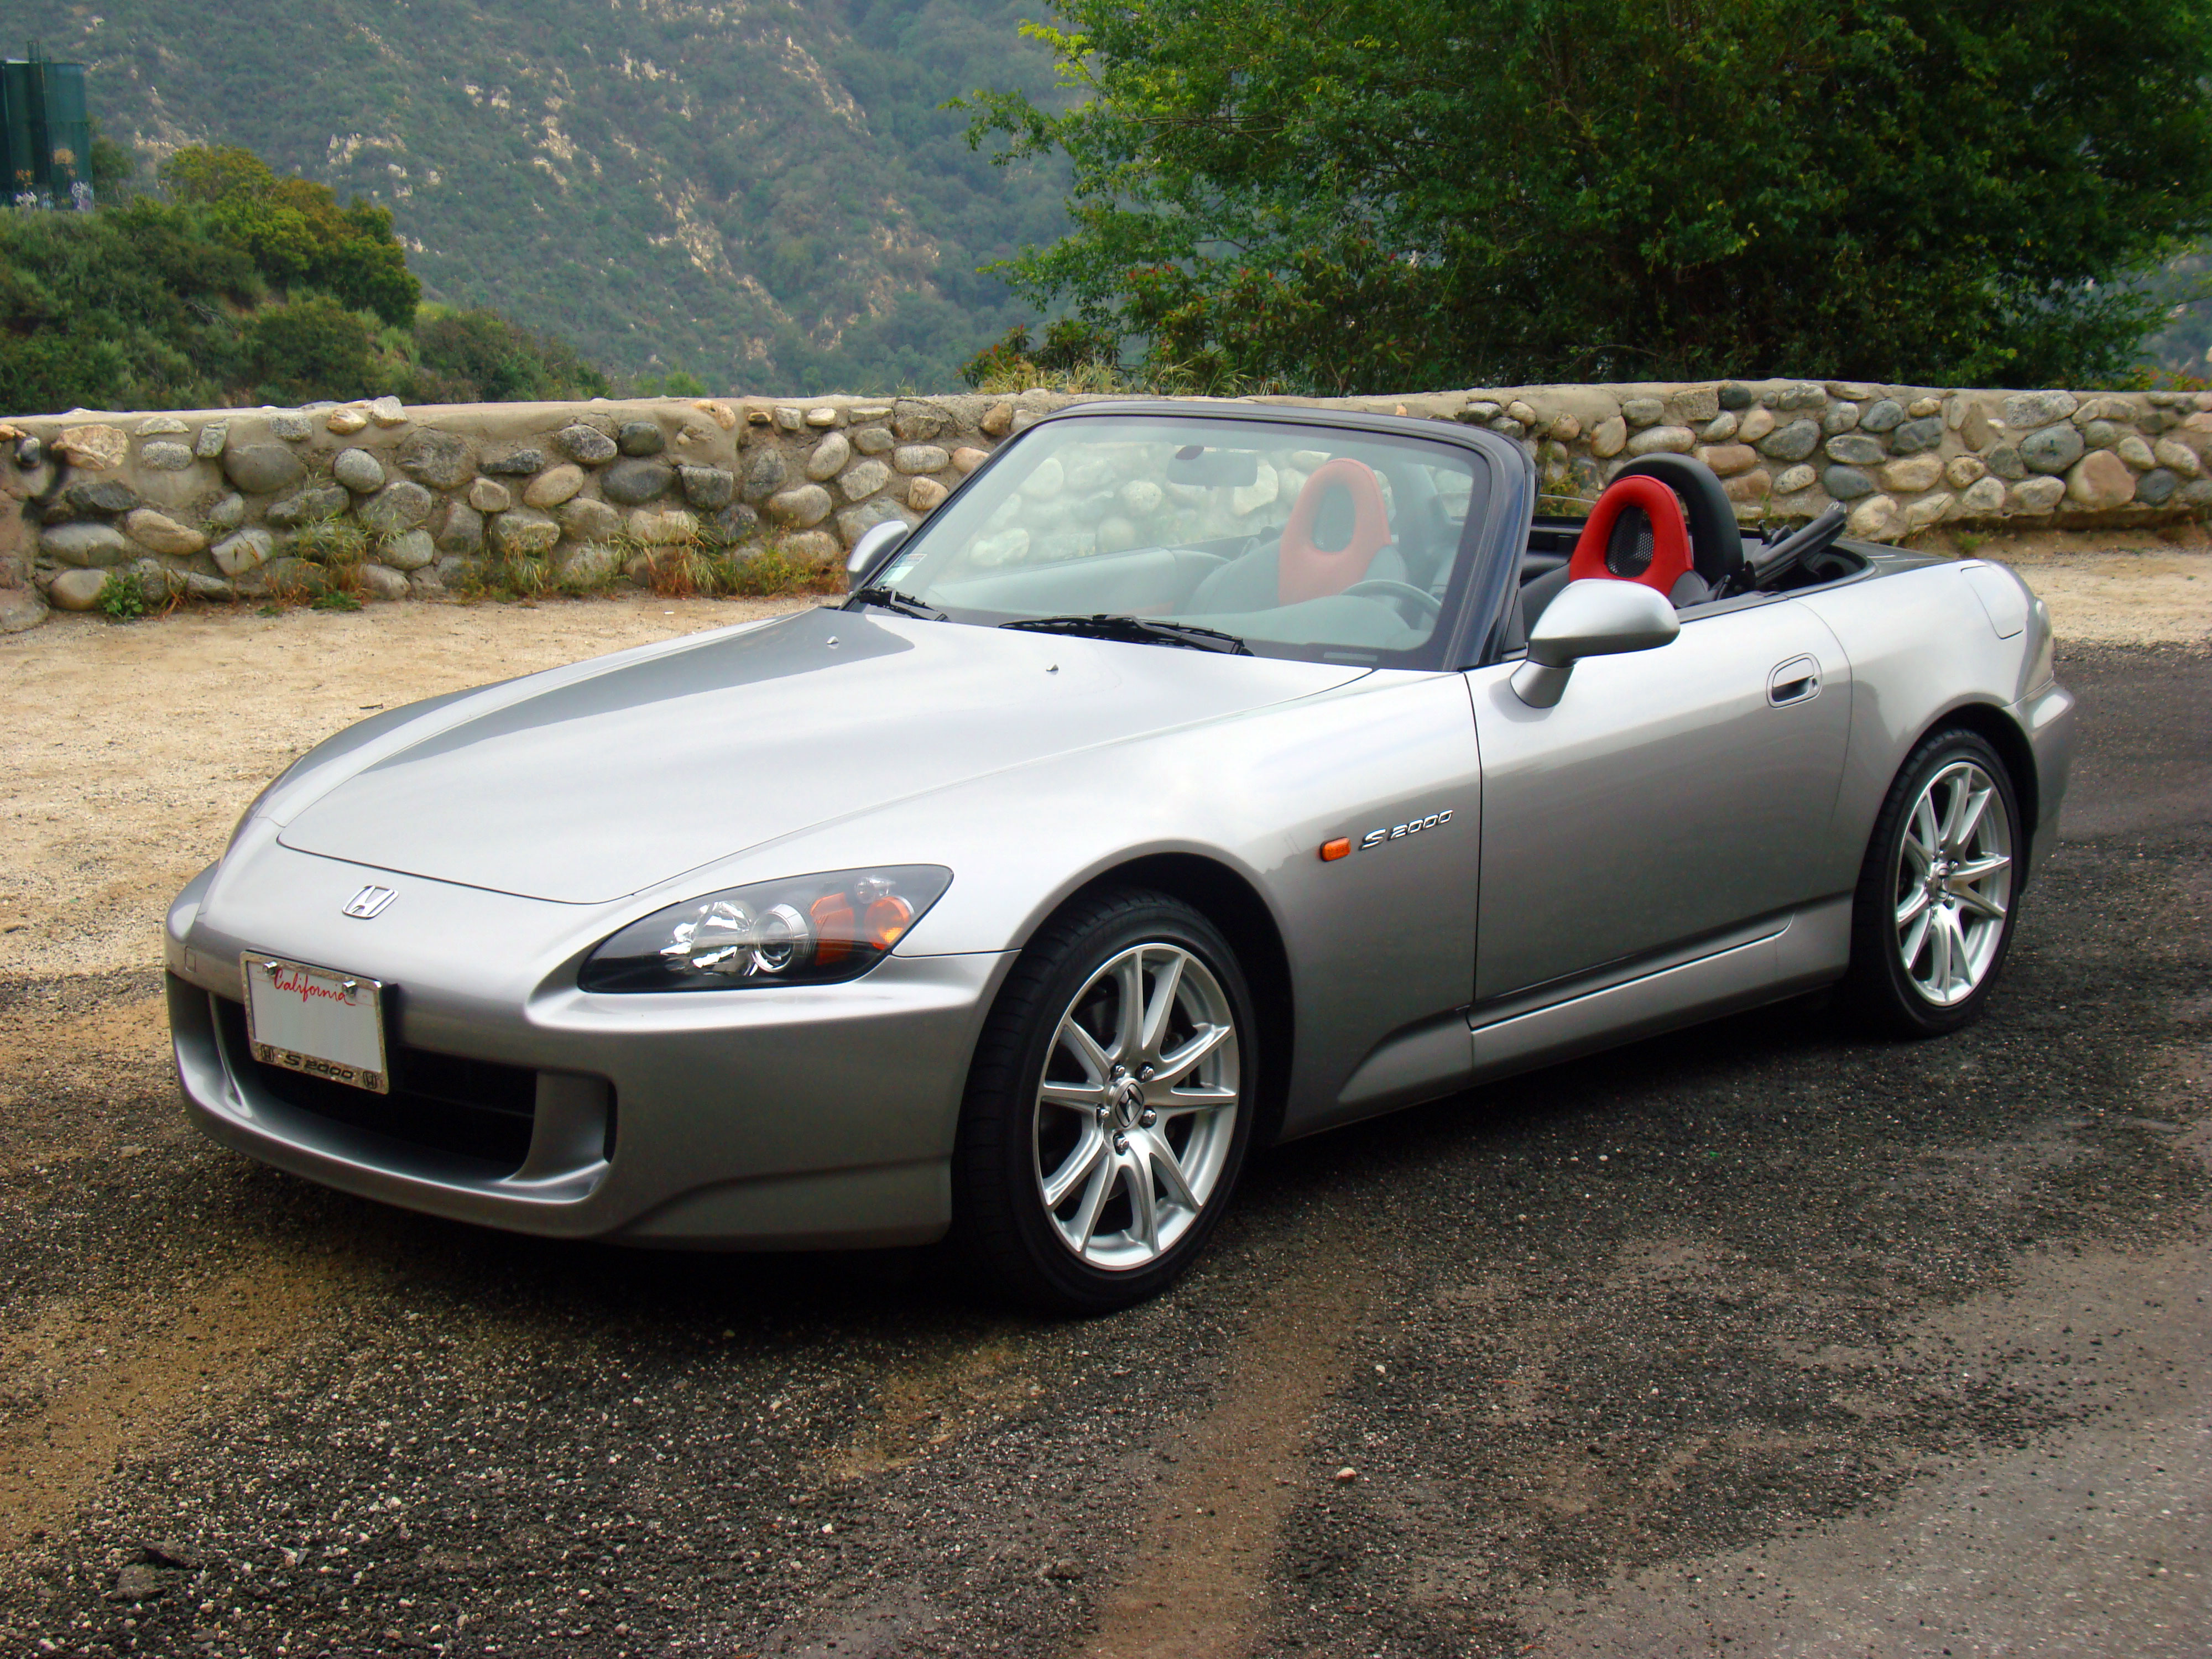 honda s2000 pictures #1